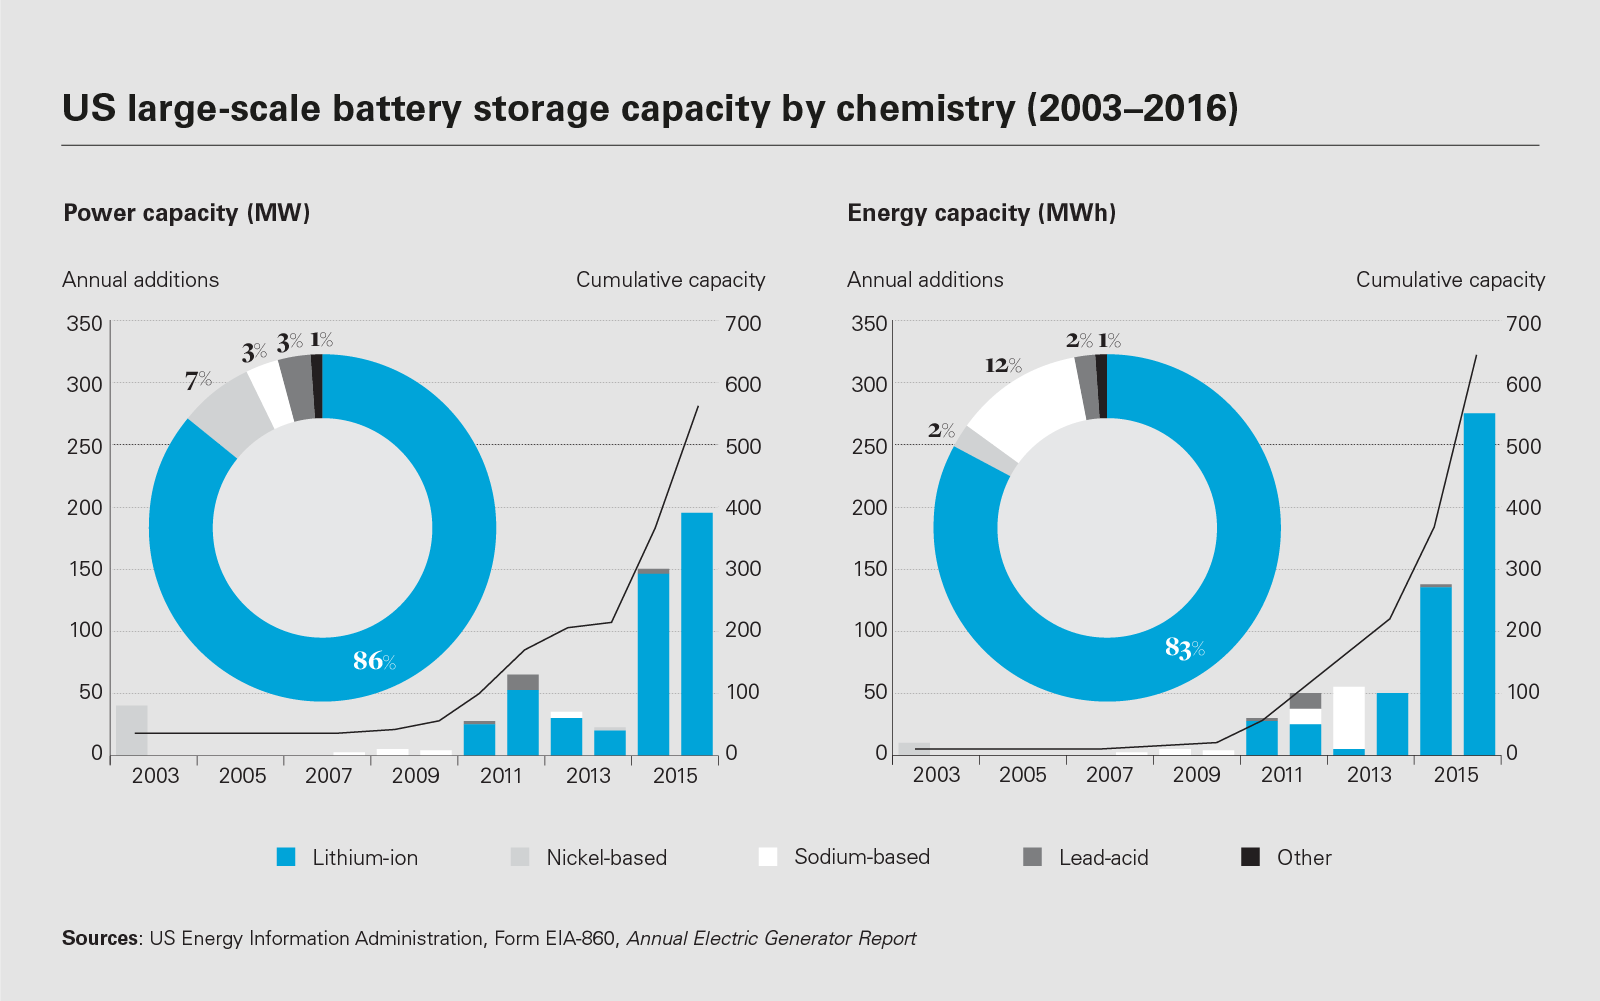 Energy_storage_LON0319065_Chart9_1600x900.png